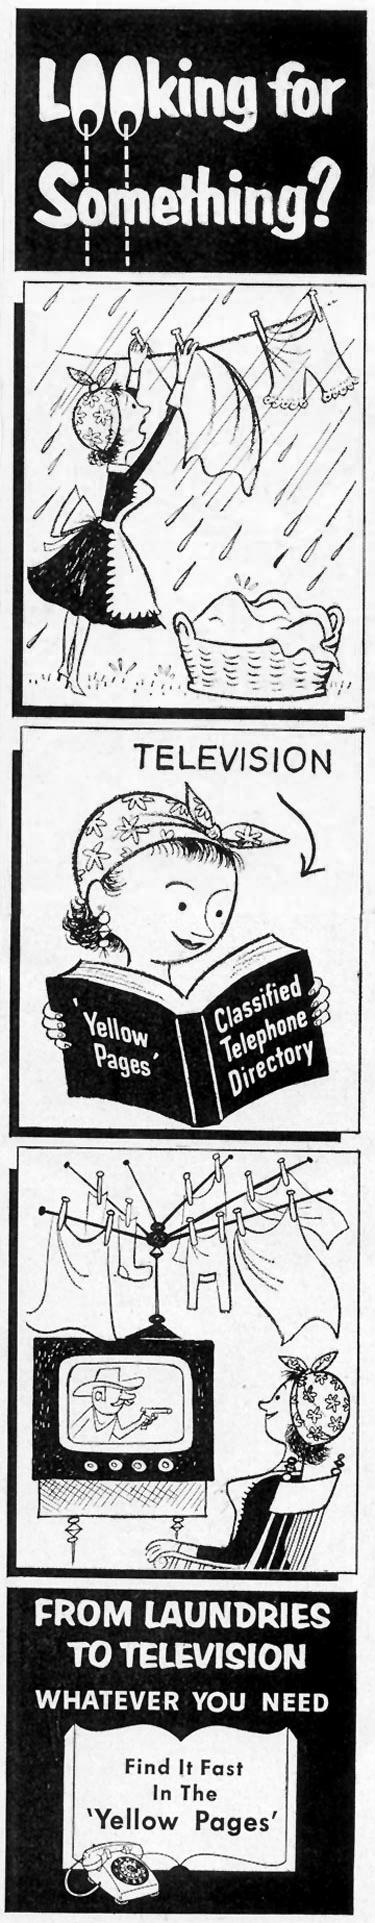 YELLOW PAGES SATURDAY EVENING POST 04/09/1955 p. 72